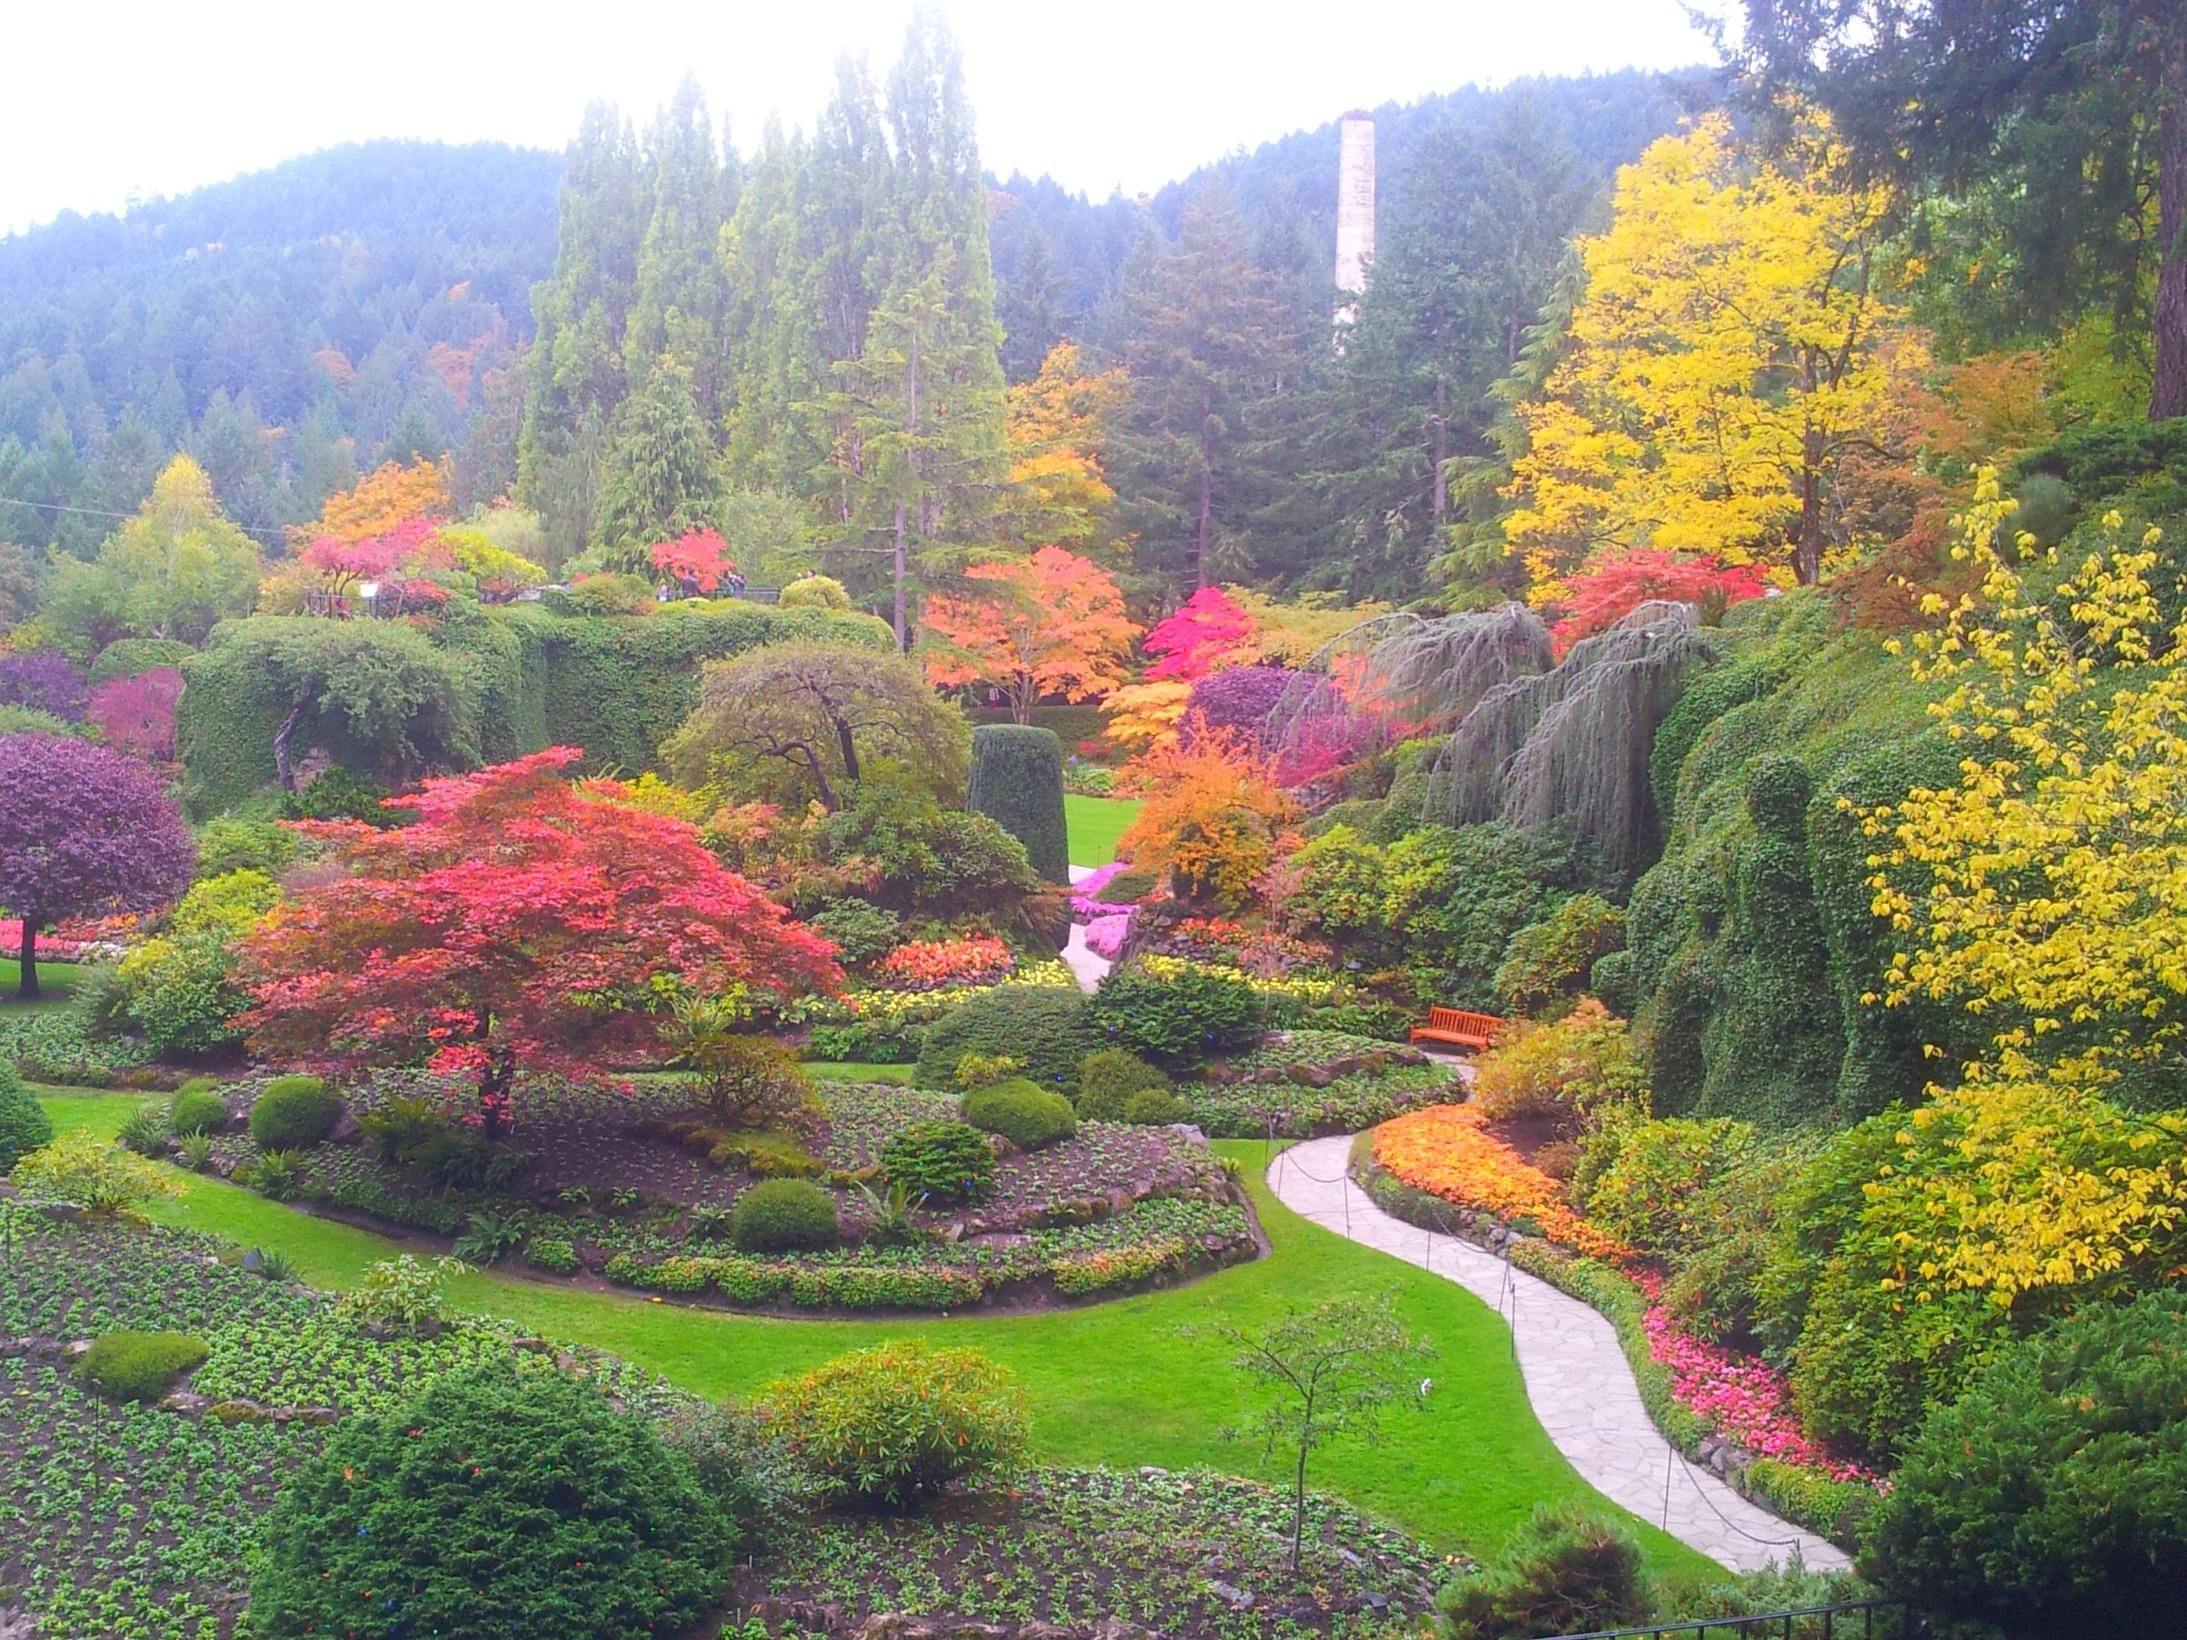 Fall colors at the butchart gardens with images